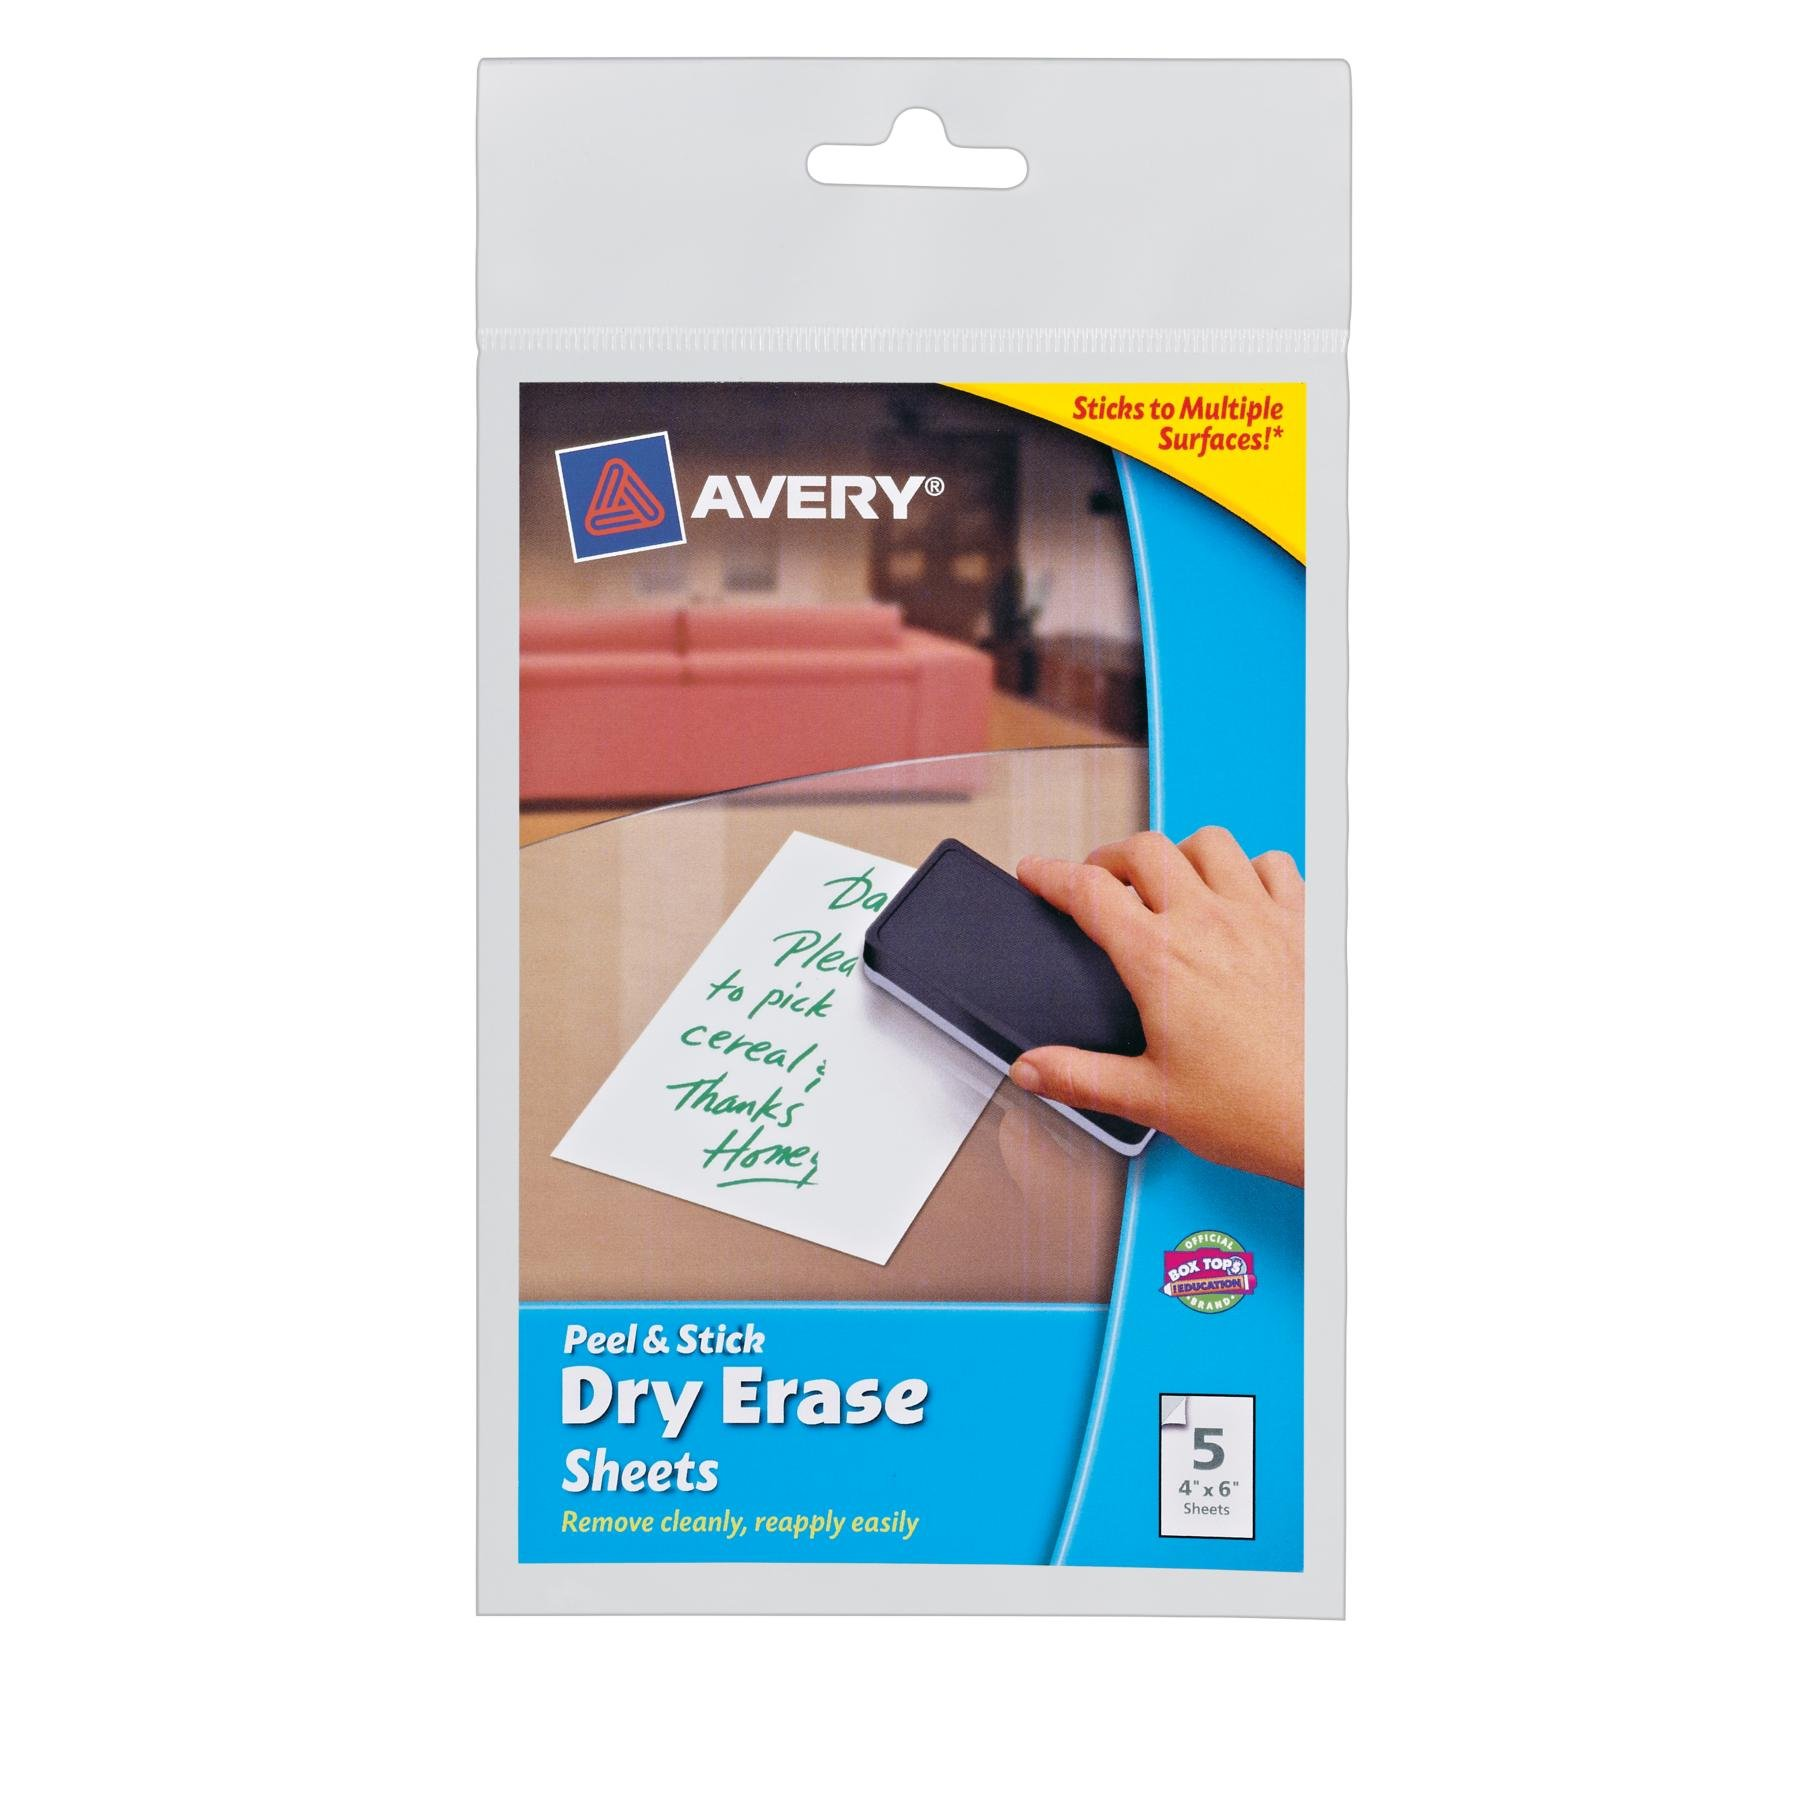 Avery Peel and Stick Dry Erase Sheets, 4 x 6 inches, White, 5 Sheets (24300) by AVERY